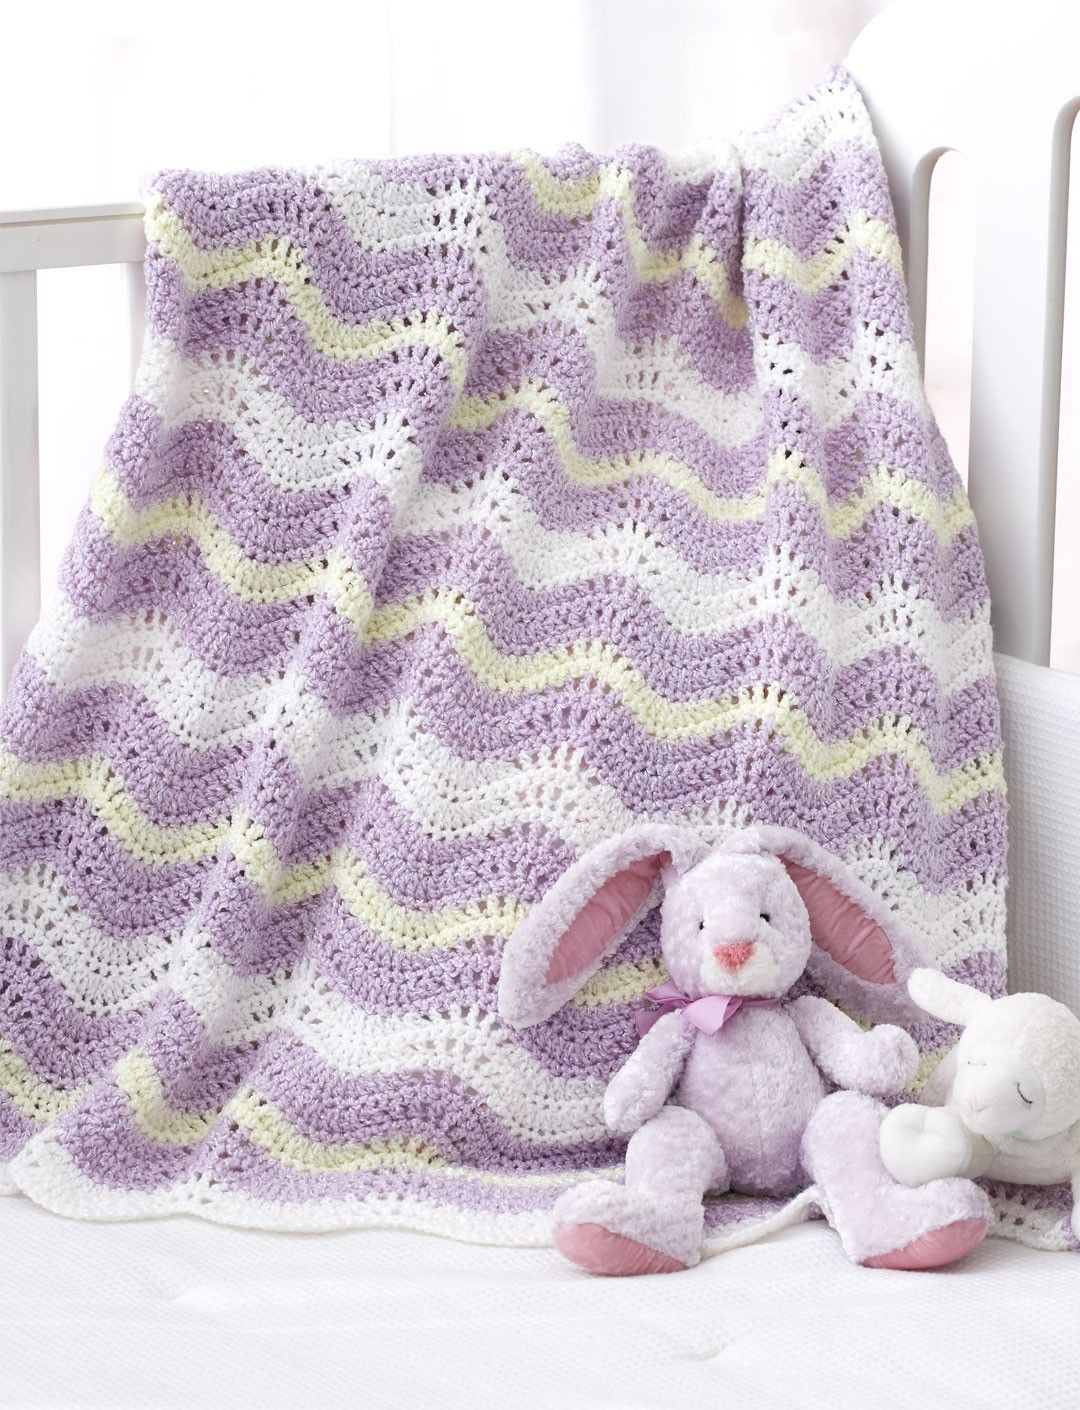 Yarnspirations.com - Bernat Wavy Ripple Blanket - Patterns ...